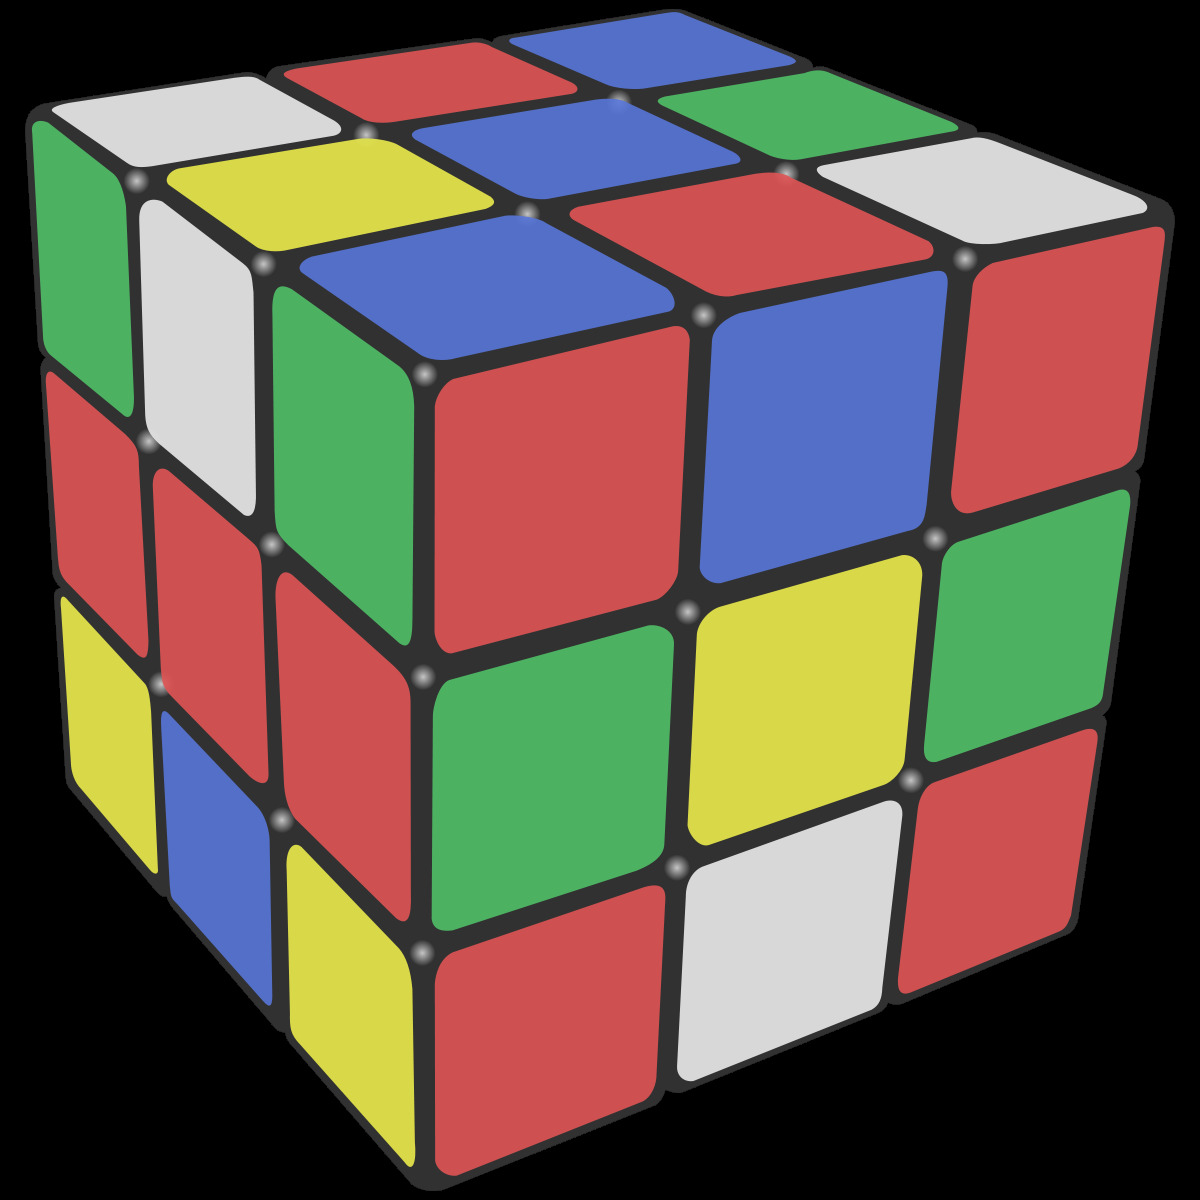 Optimal solutions for Rubik's Cube